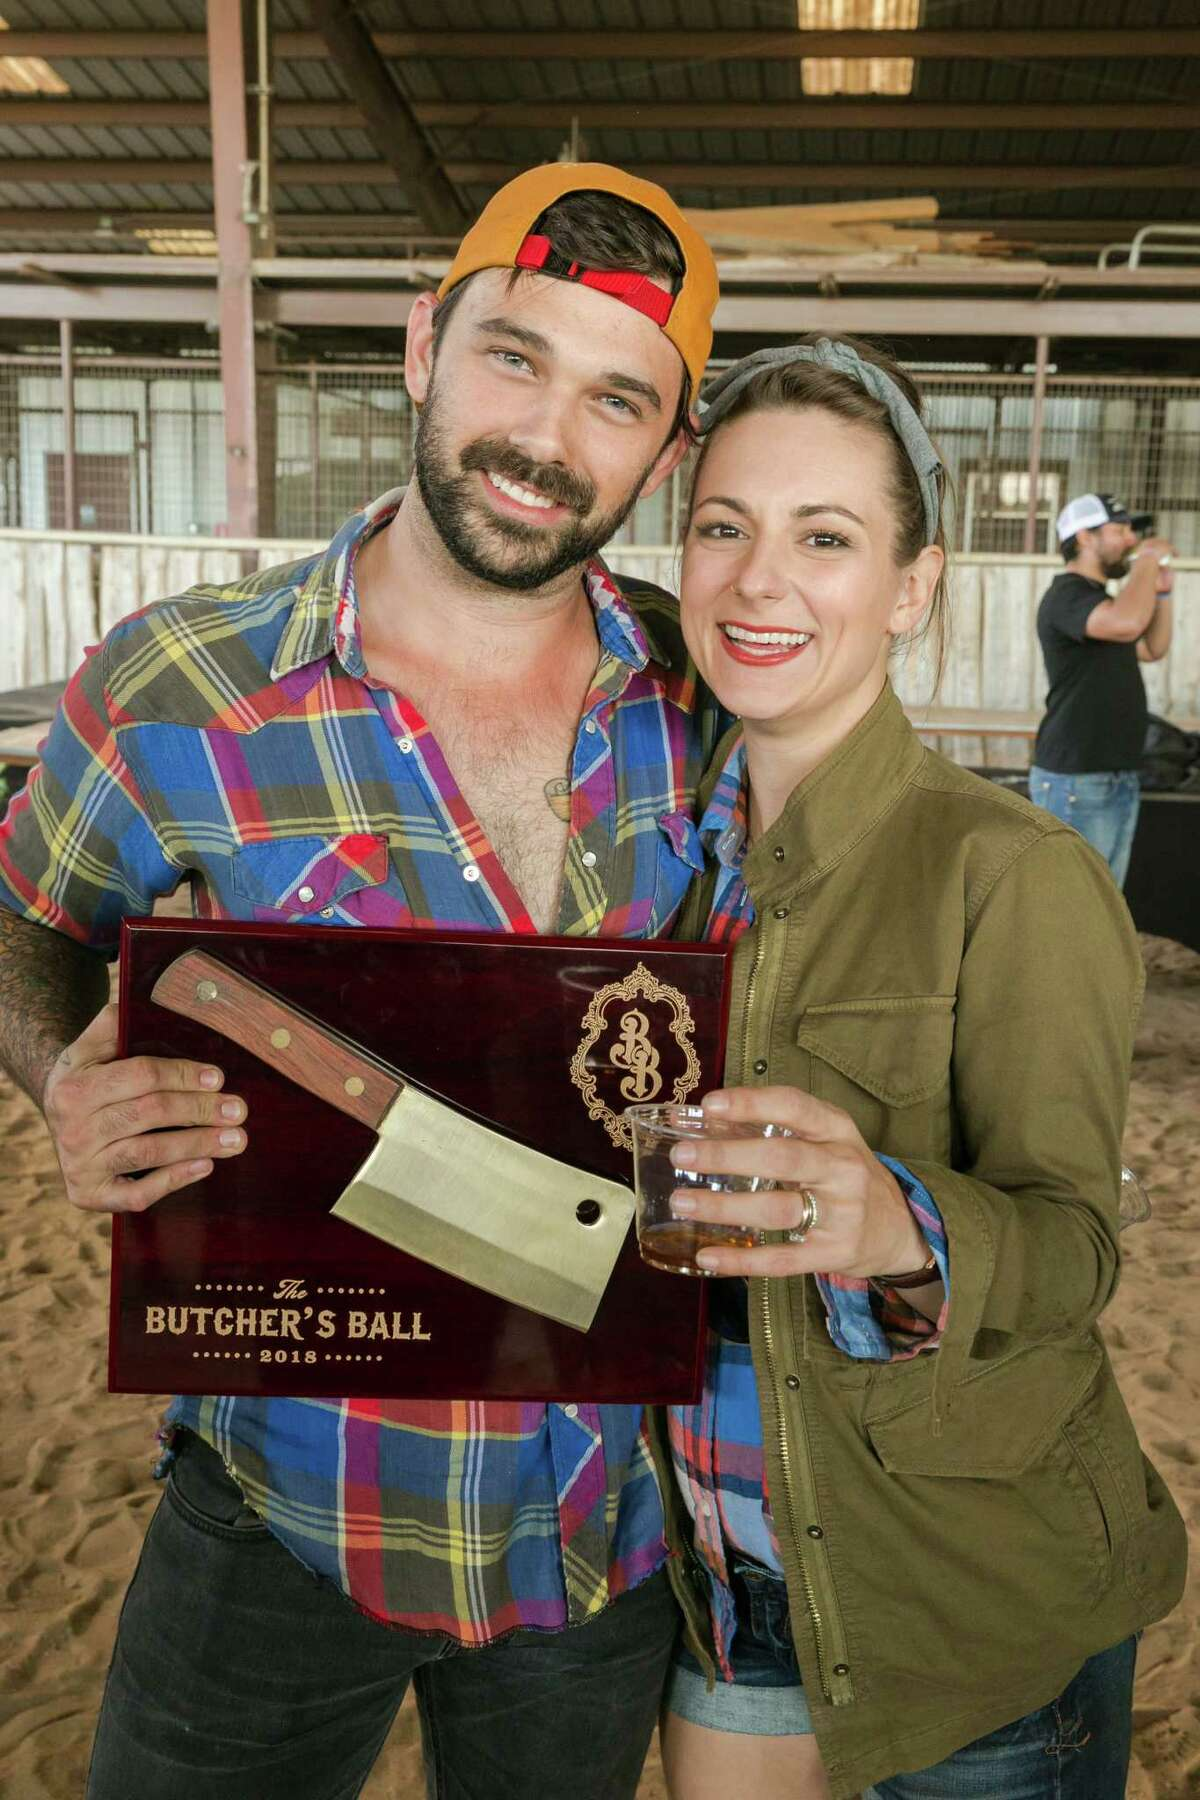 Tony Luhrman, owner and operator of El Topo Food Truck, with Kate Luhrman at 2018 Butcher's Ball. El Topo won the Golden Cleaver competition.